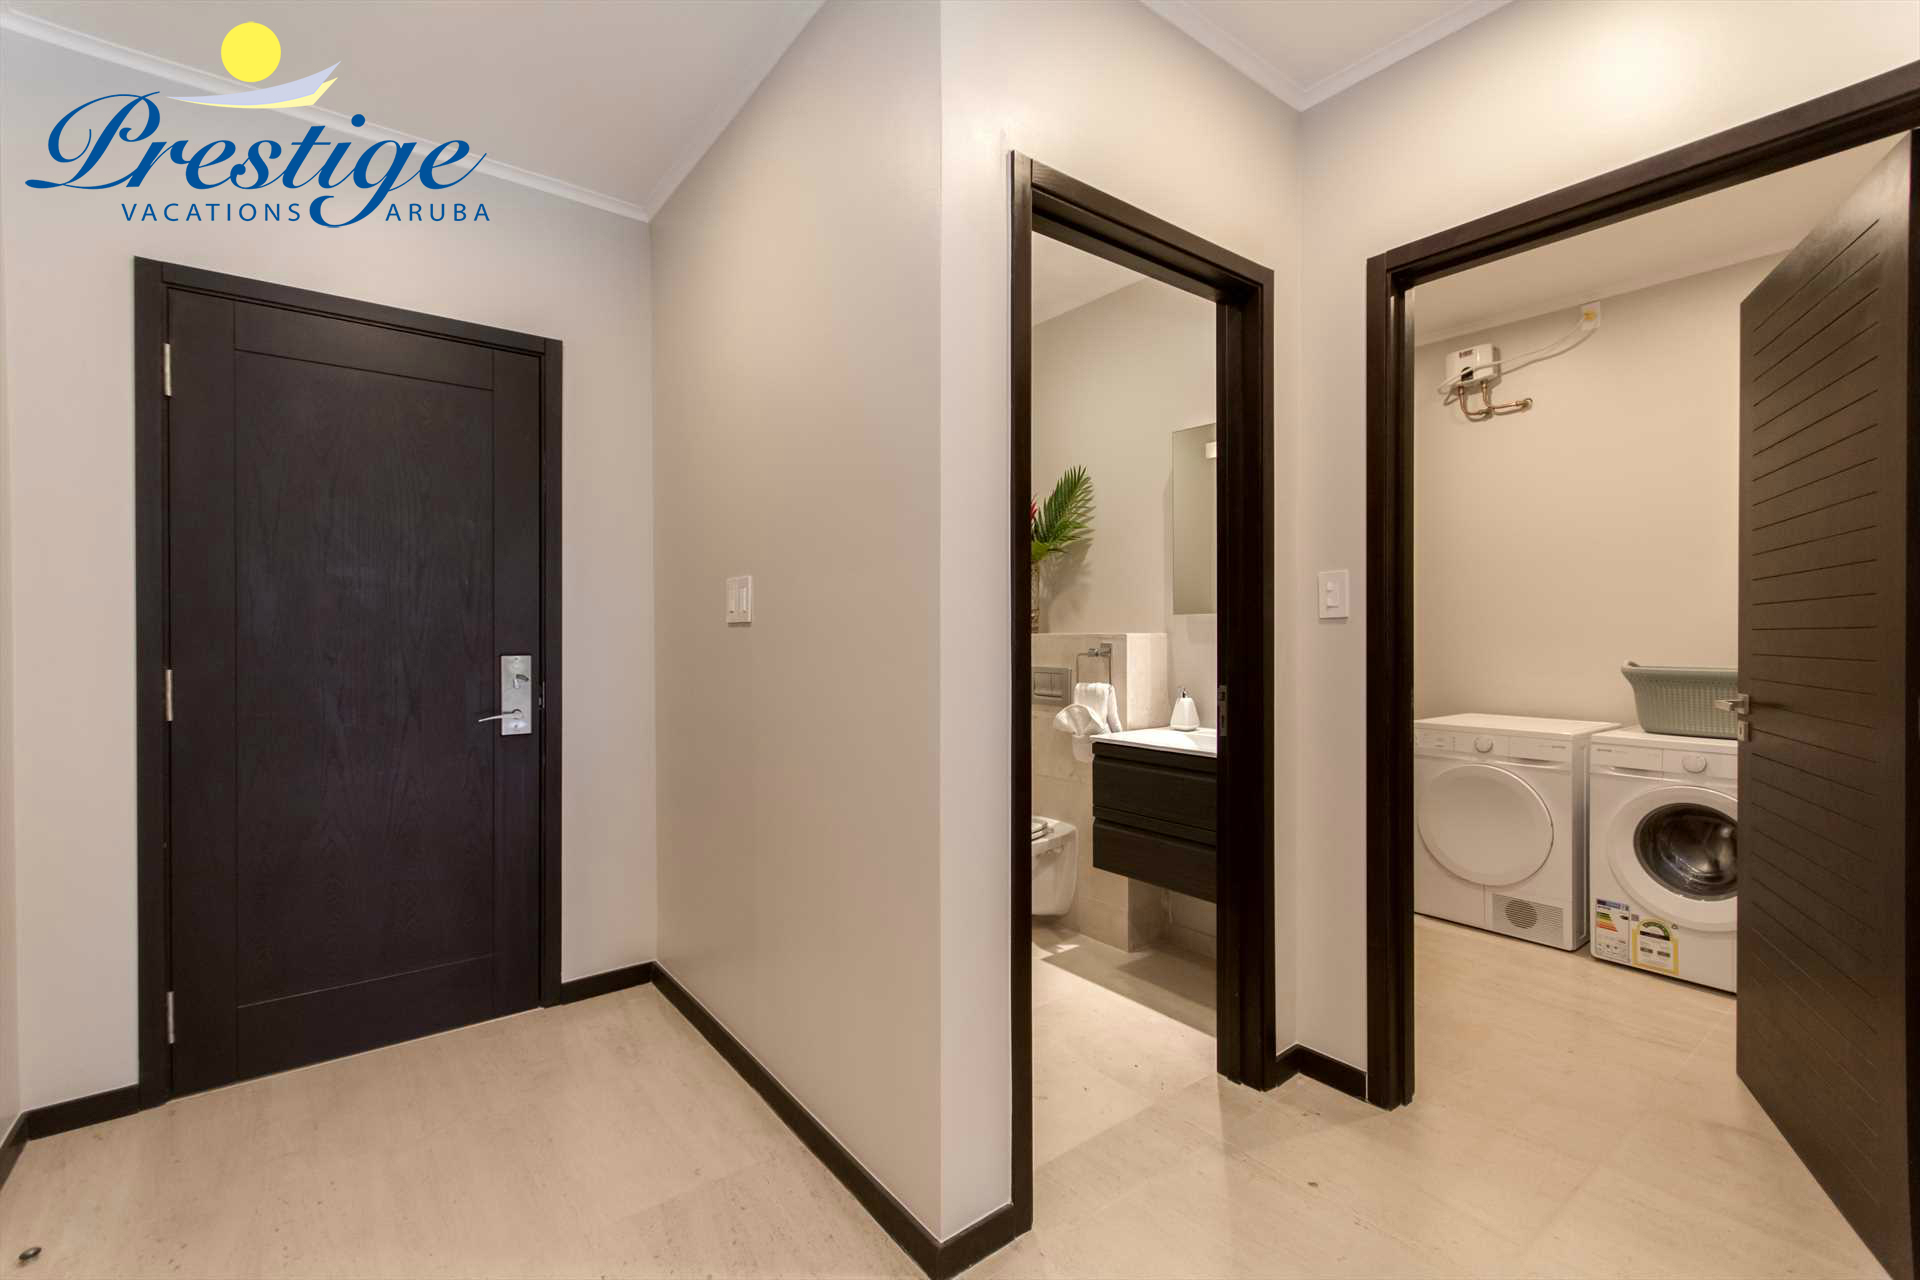 The entrance corridor lends access to a half bathroom and laundry room